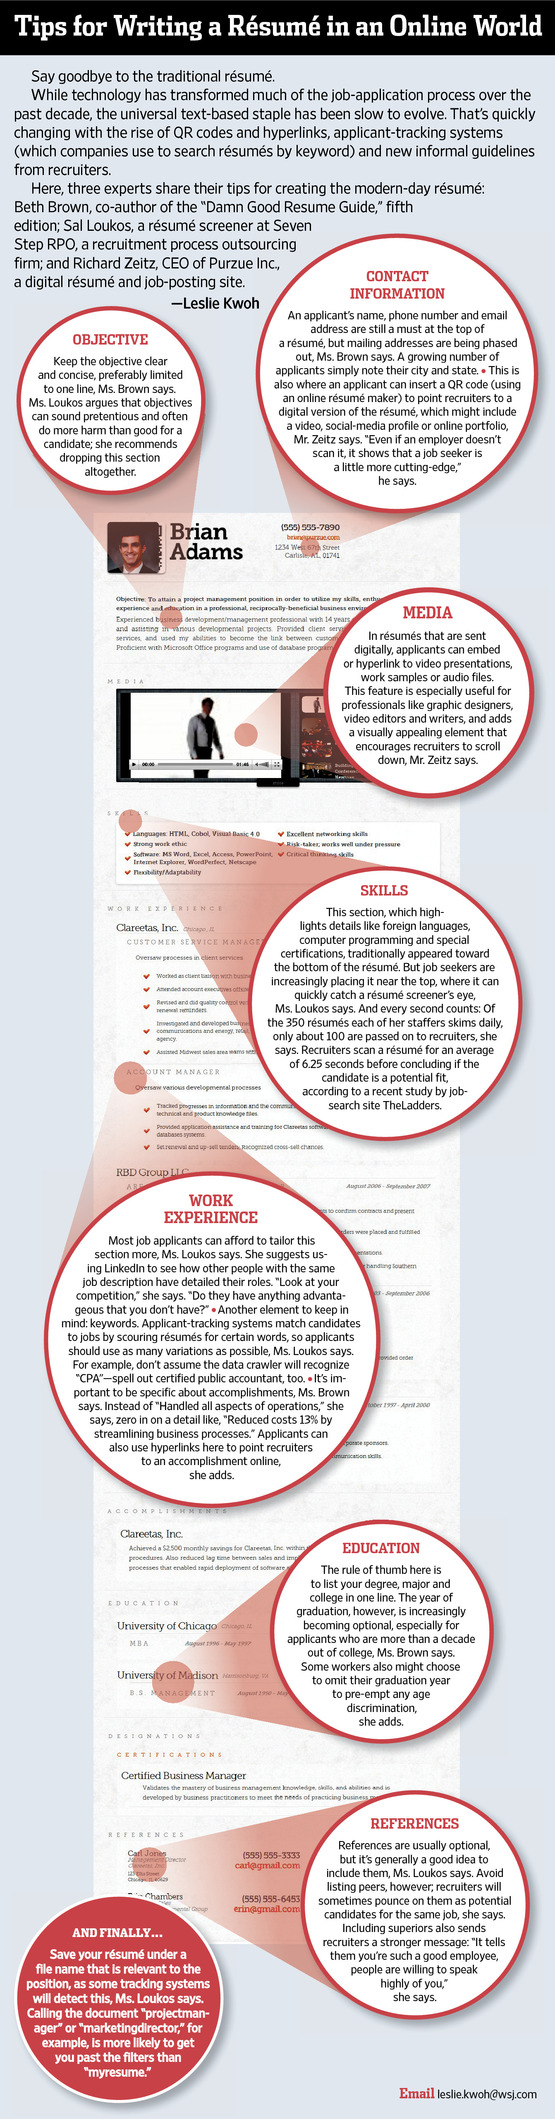 tip for writing a resume in an online world tips for writing a resume in an online world